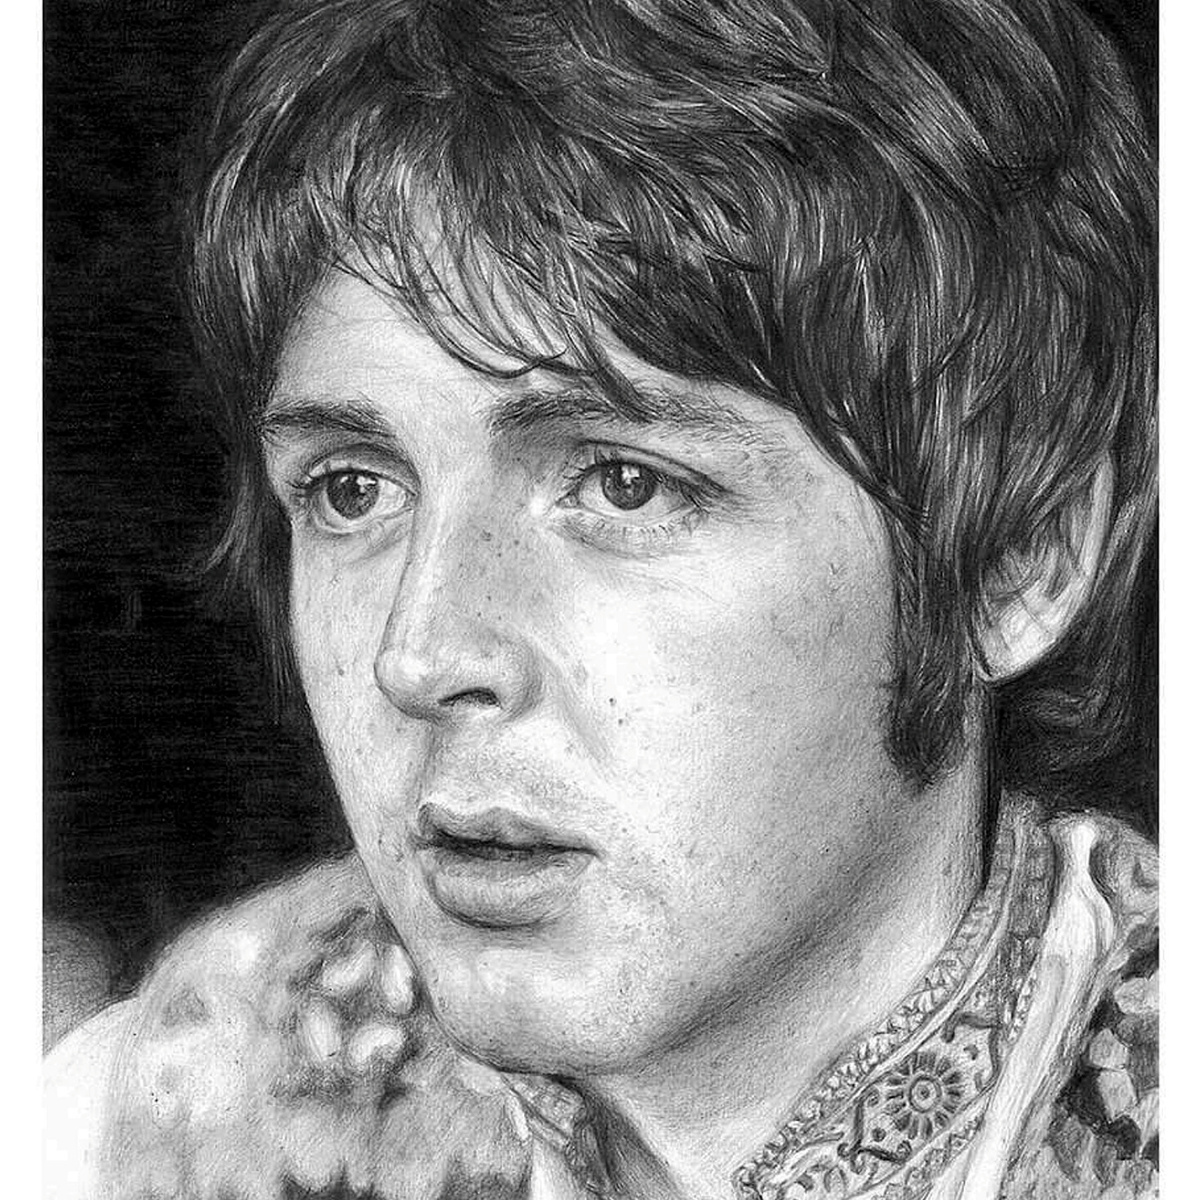 Former Model Now Creates Incredible Photo Real Portraits Using Pencil SWNS BEATLES DRAWINGS 01